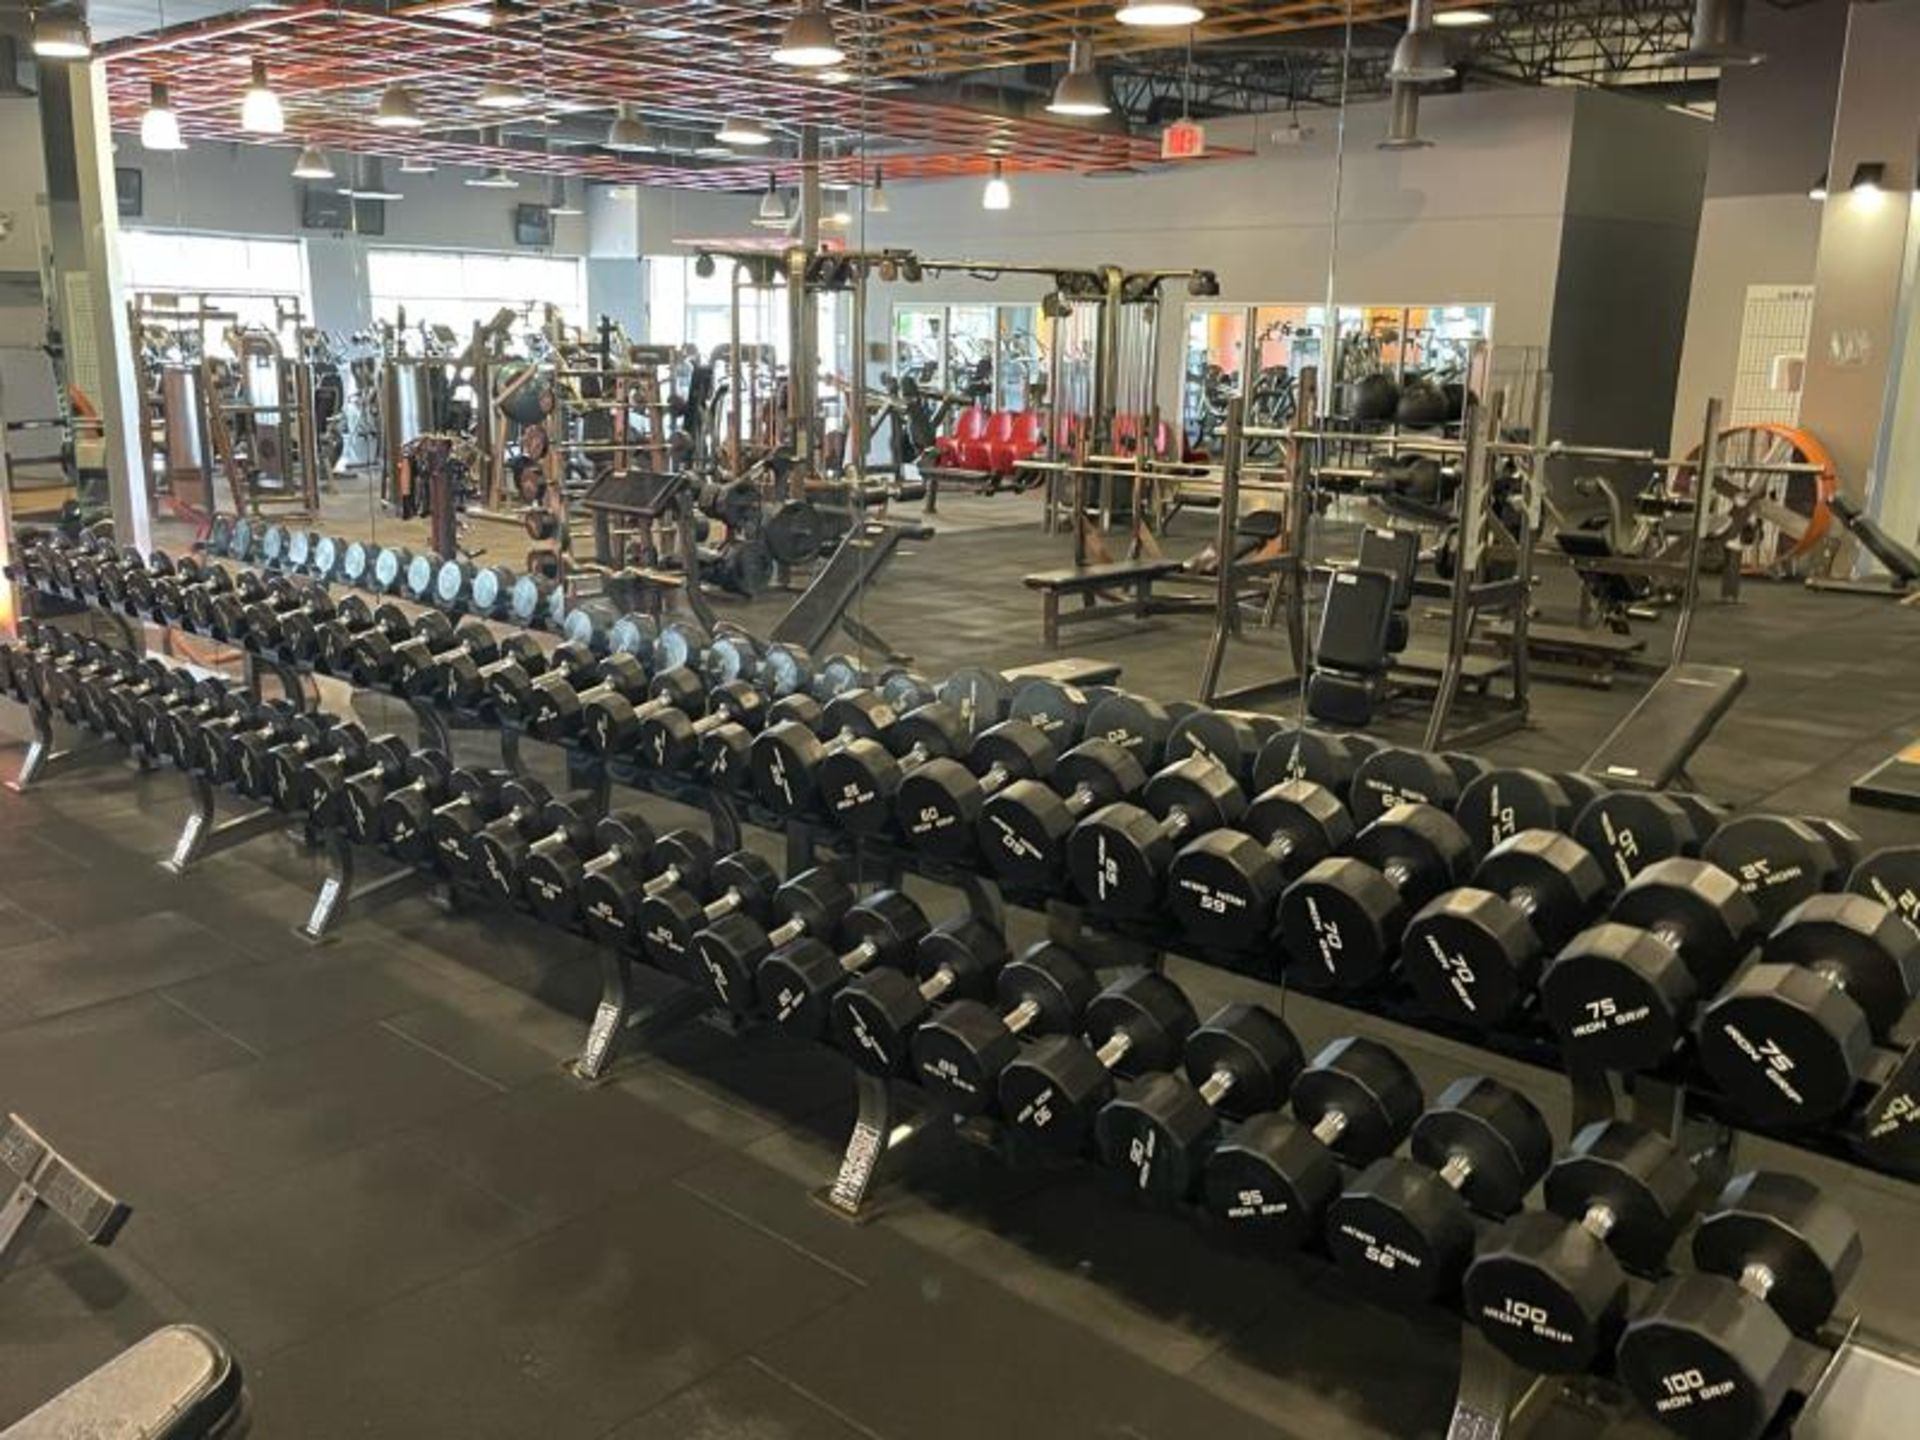 Iron Grip Dumbbell 5-100# with Hammer Strength 2 Tier Racks - Image 9 of 9